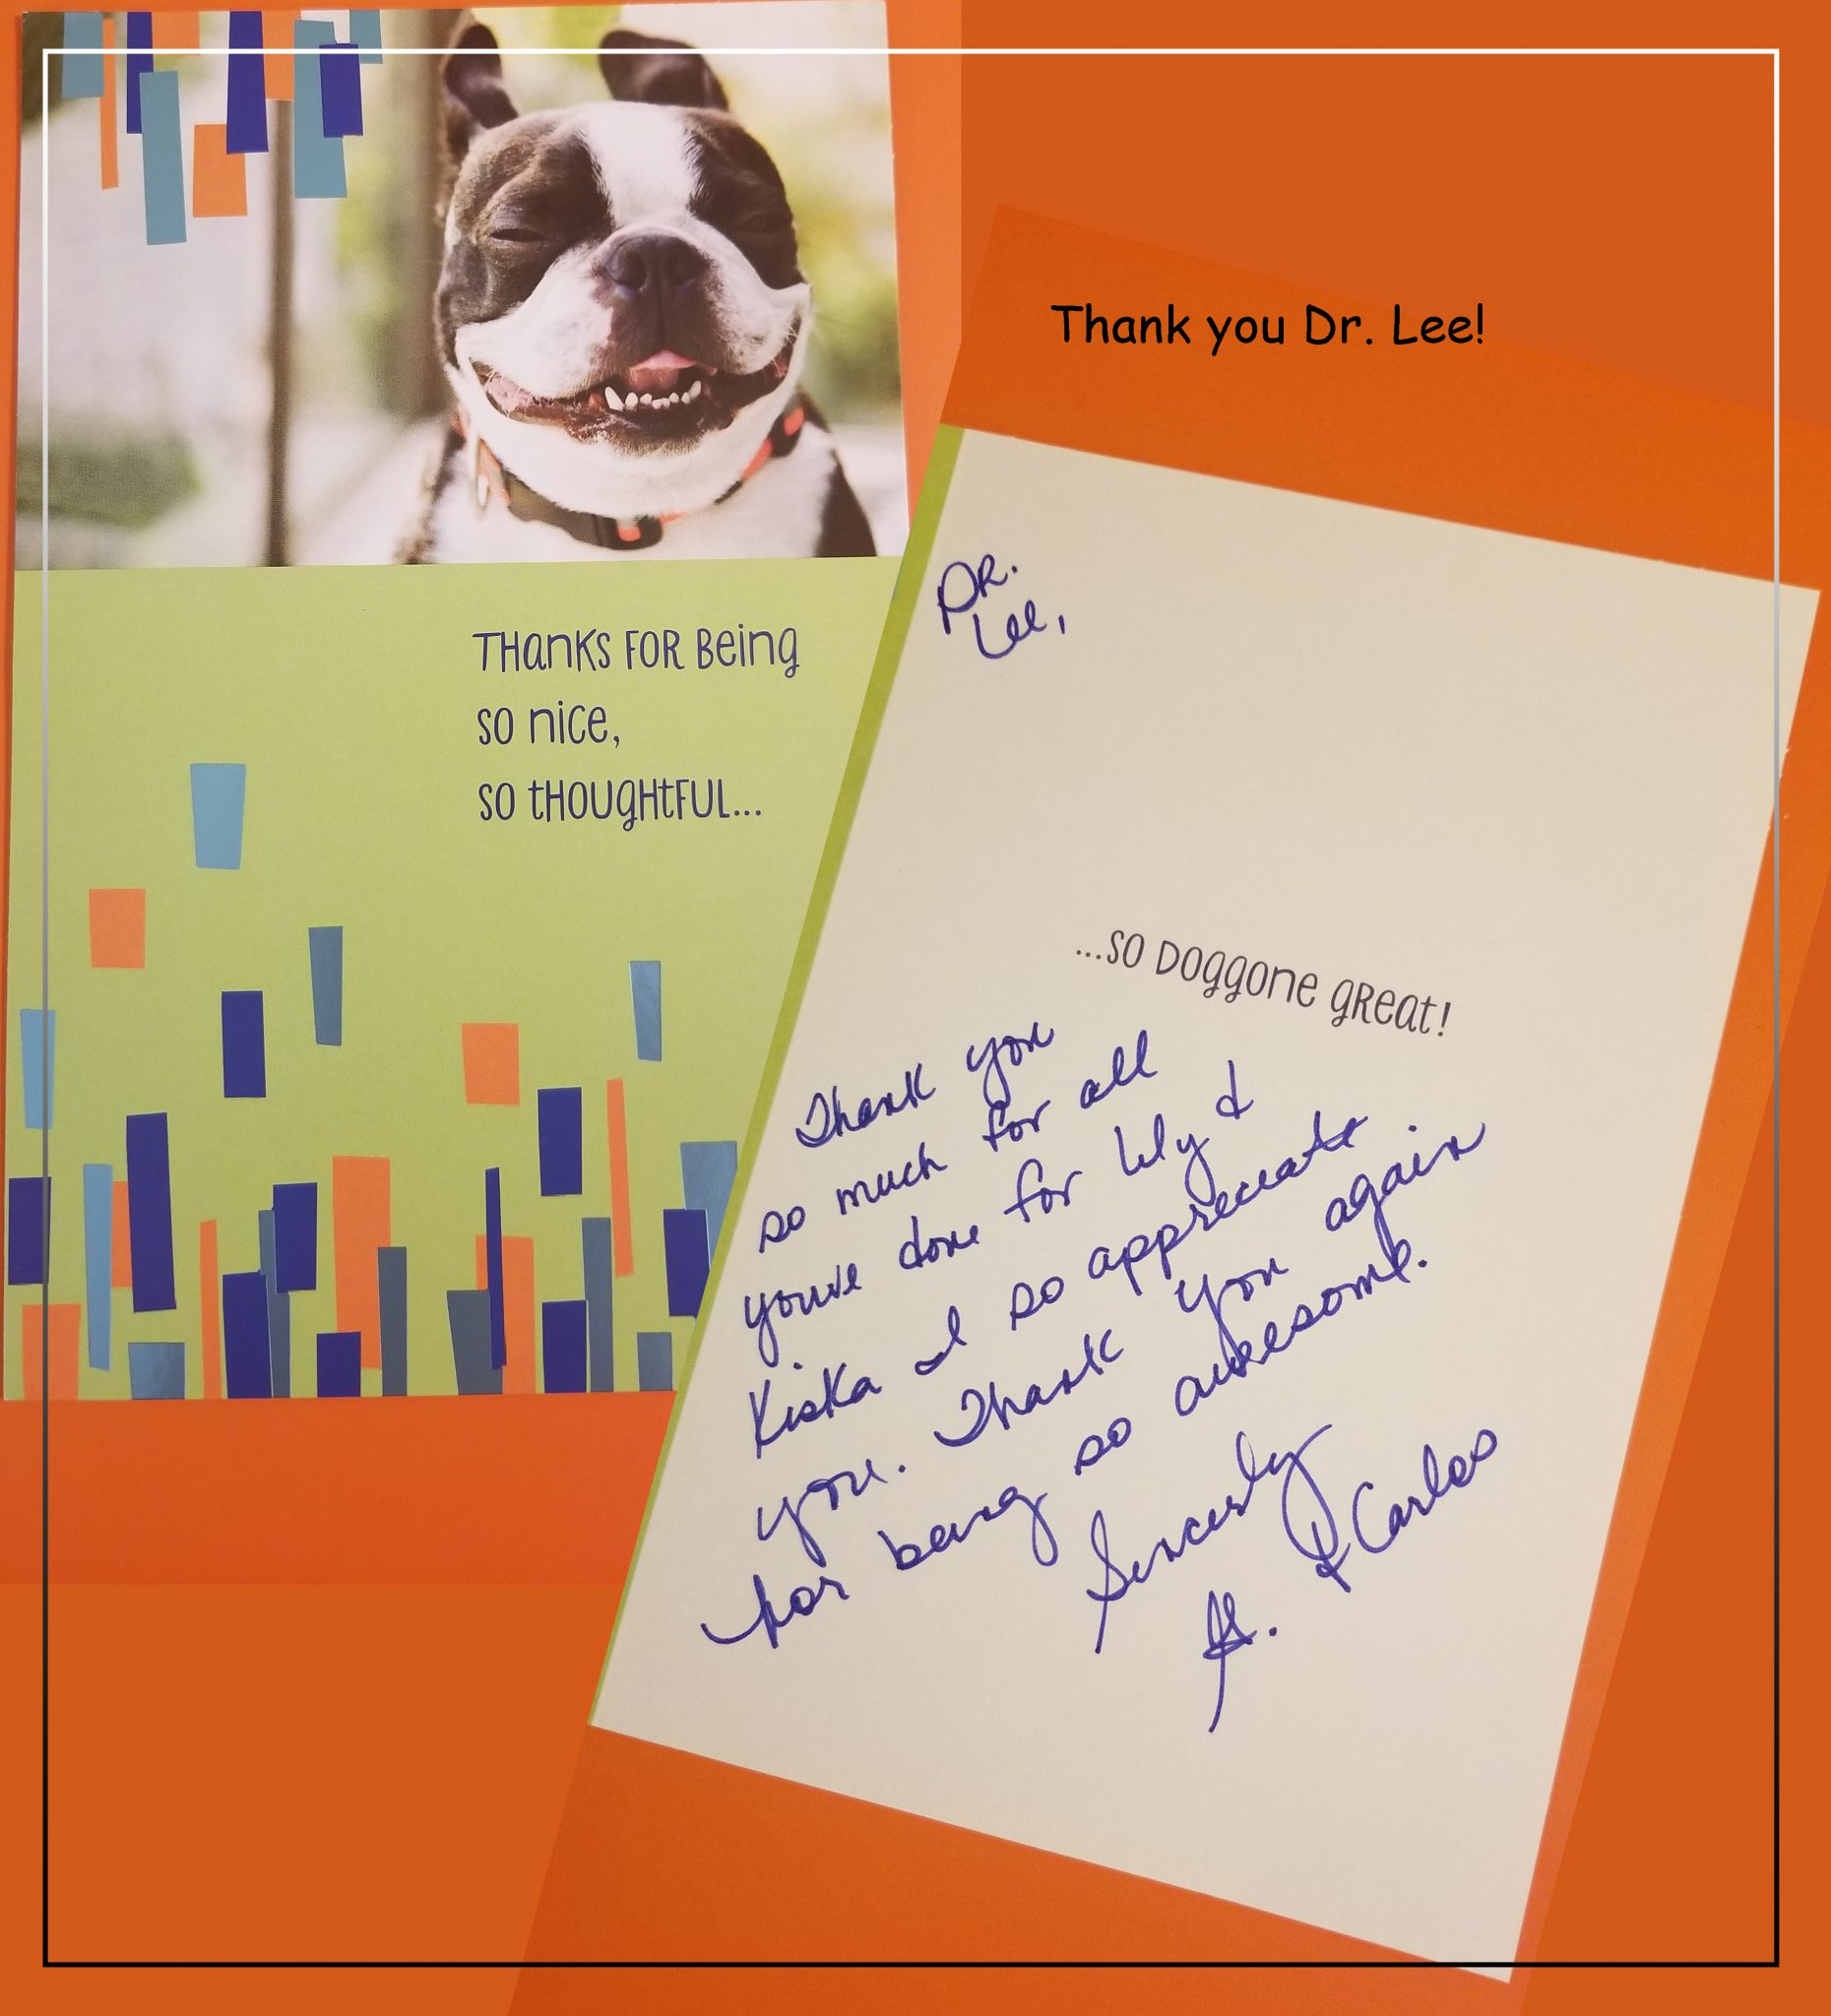 am-pm-ideal-pet-care-thank-you-dr-lee